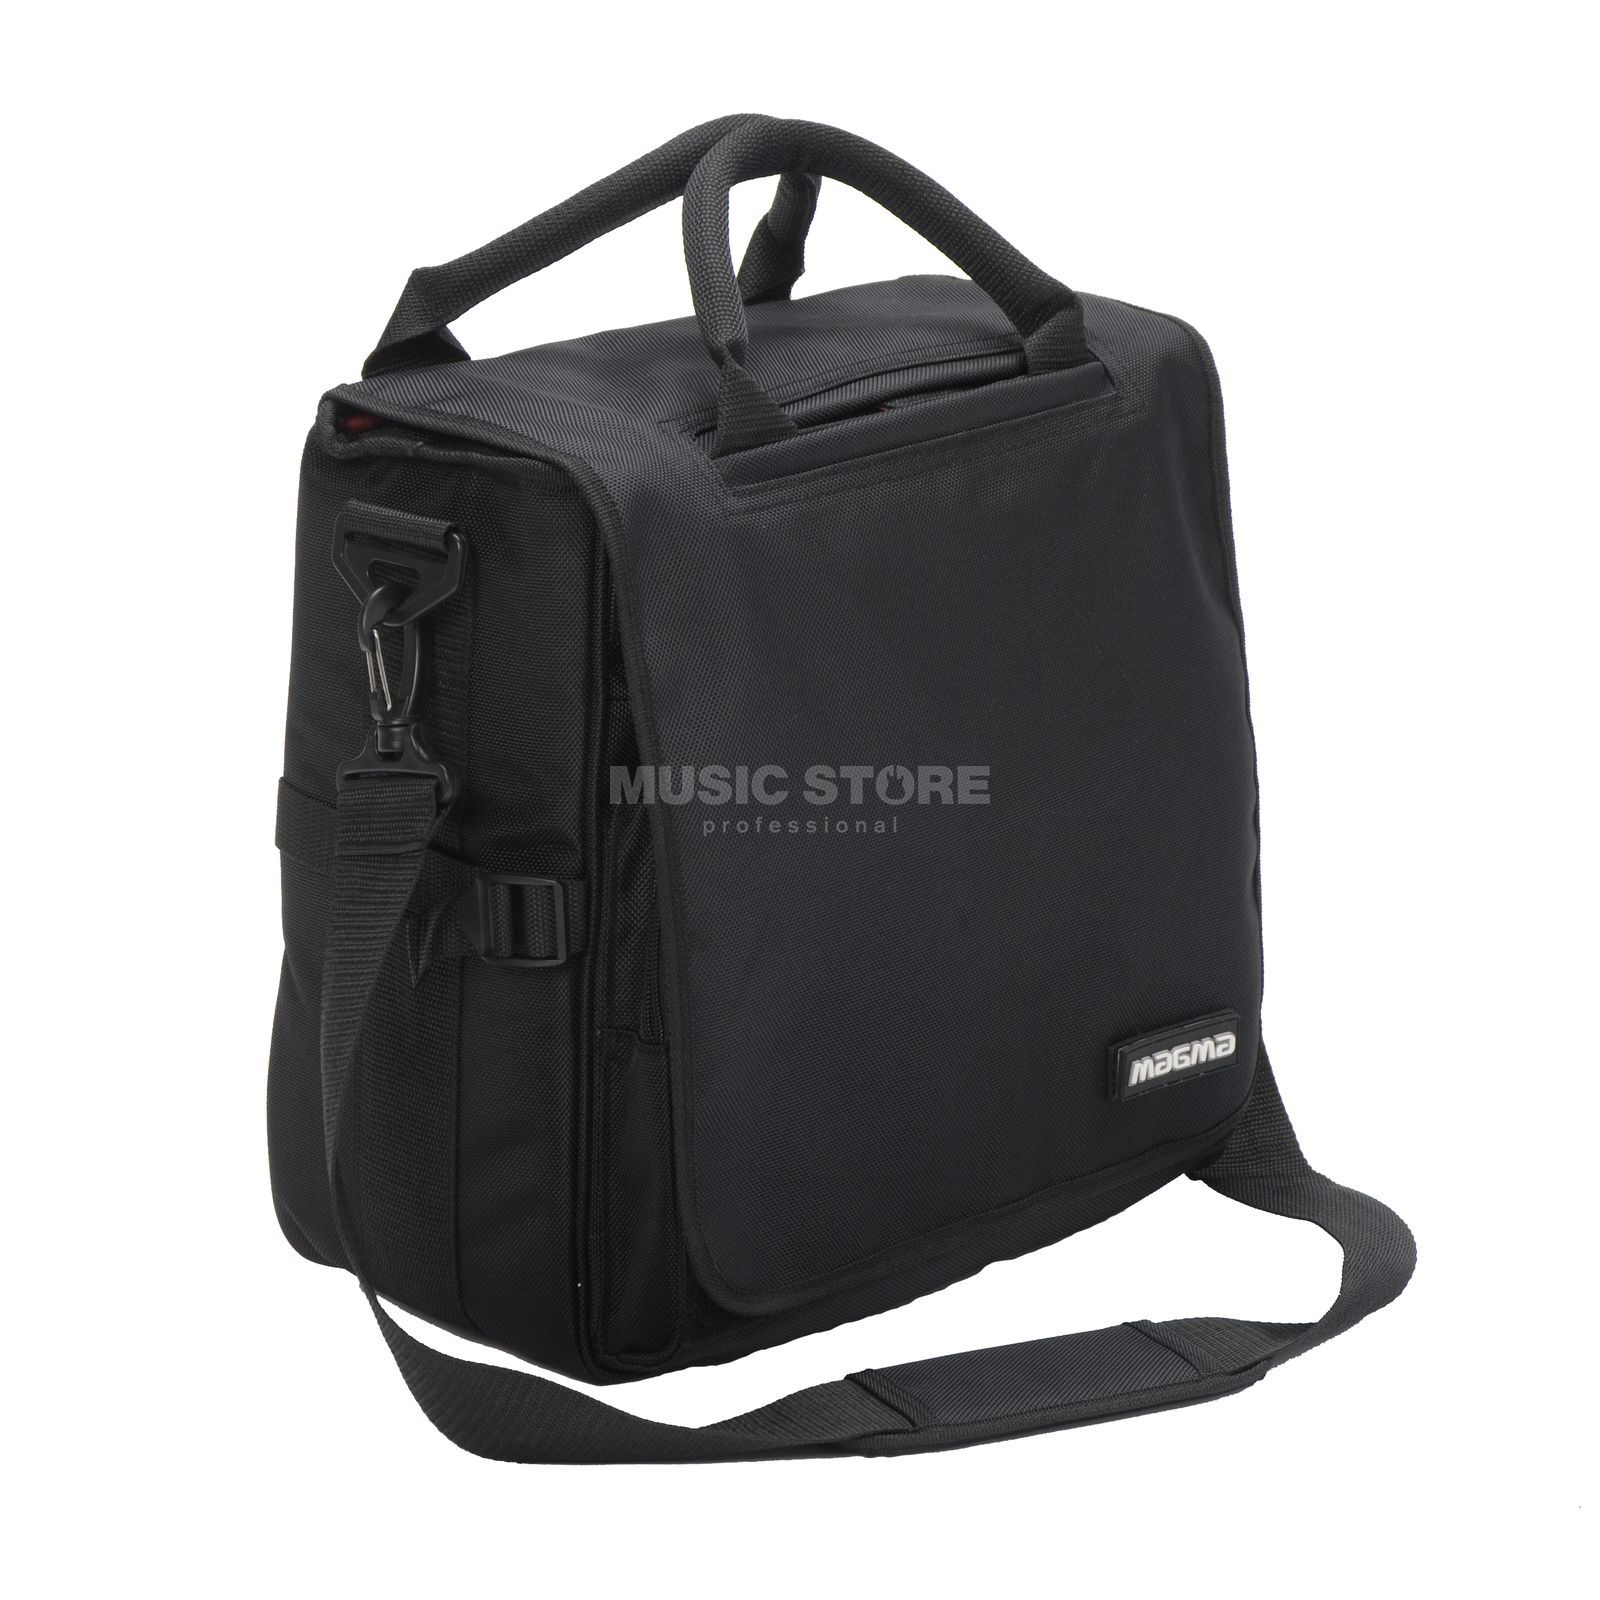 Magma LP Bag 40 Black DJ LP Bag for 80 Vinyls, Pad Produktbillede